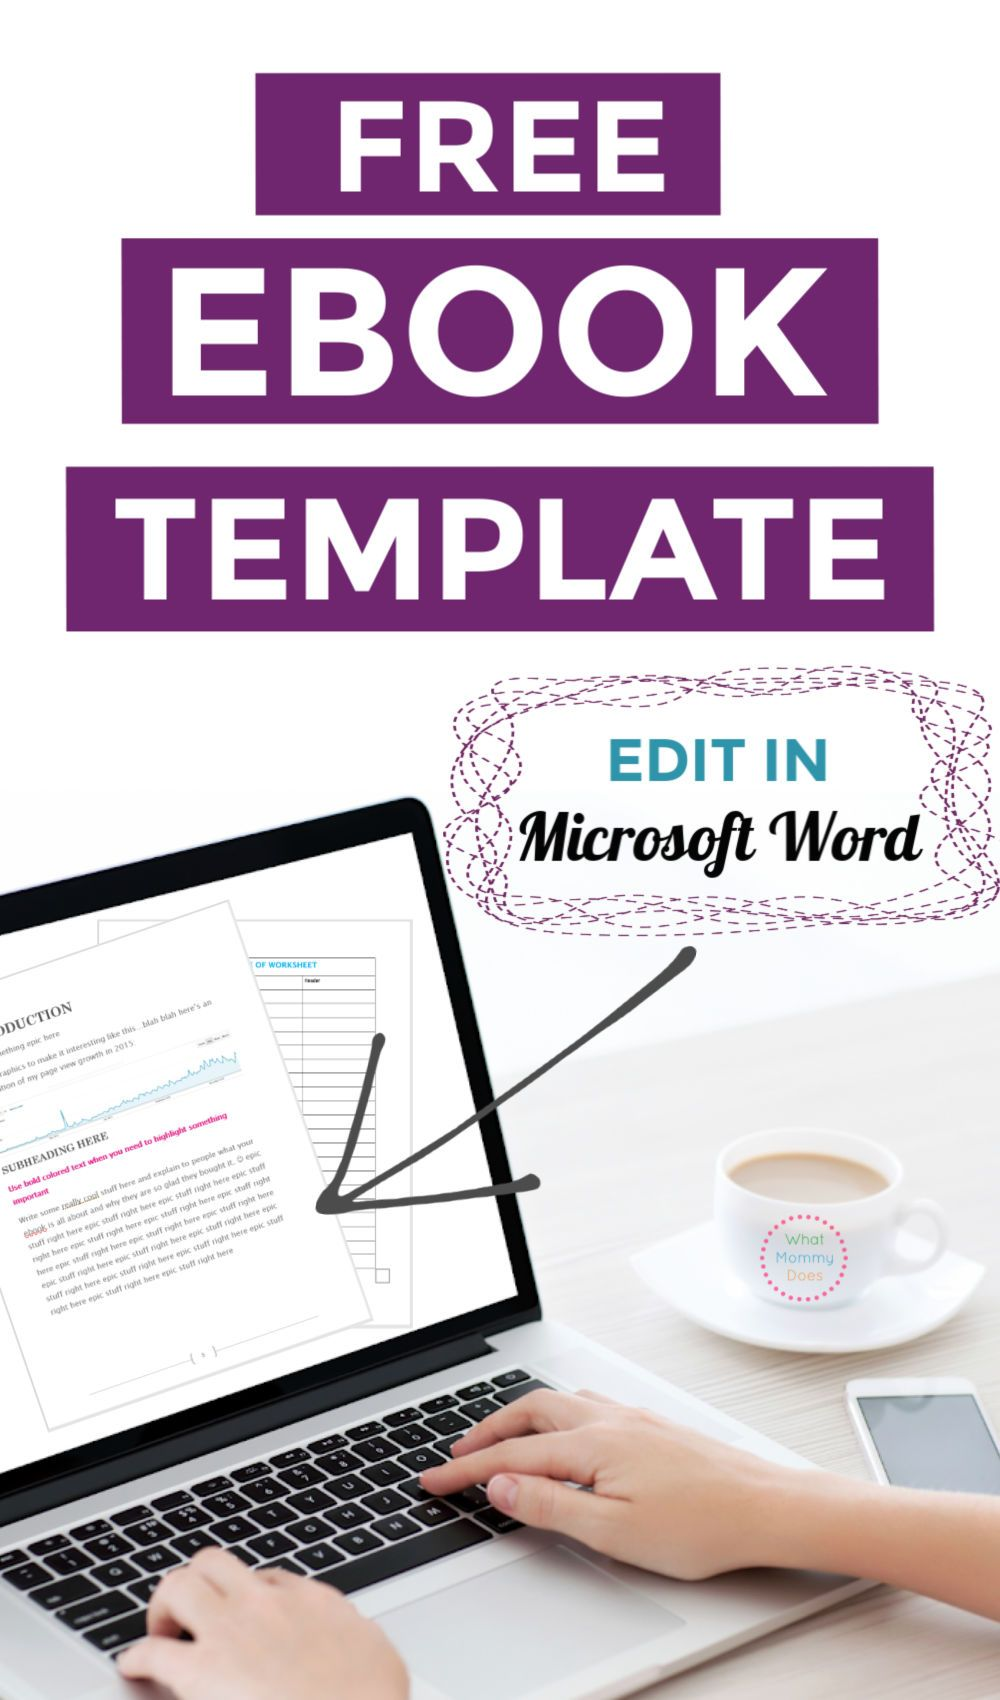 This FREE EBOOK TEMPLATE is exactly what you need to